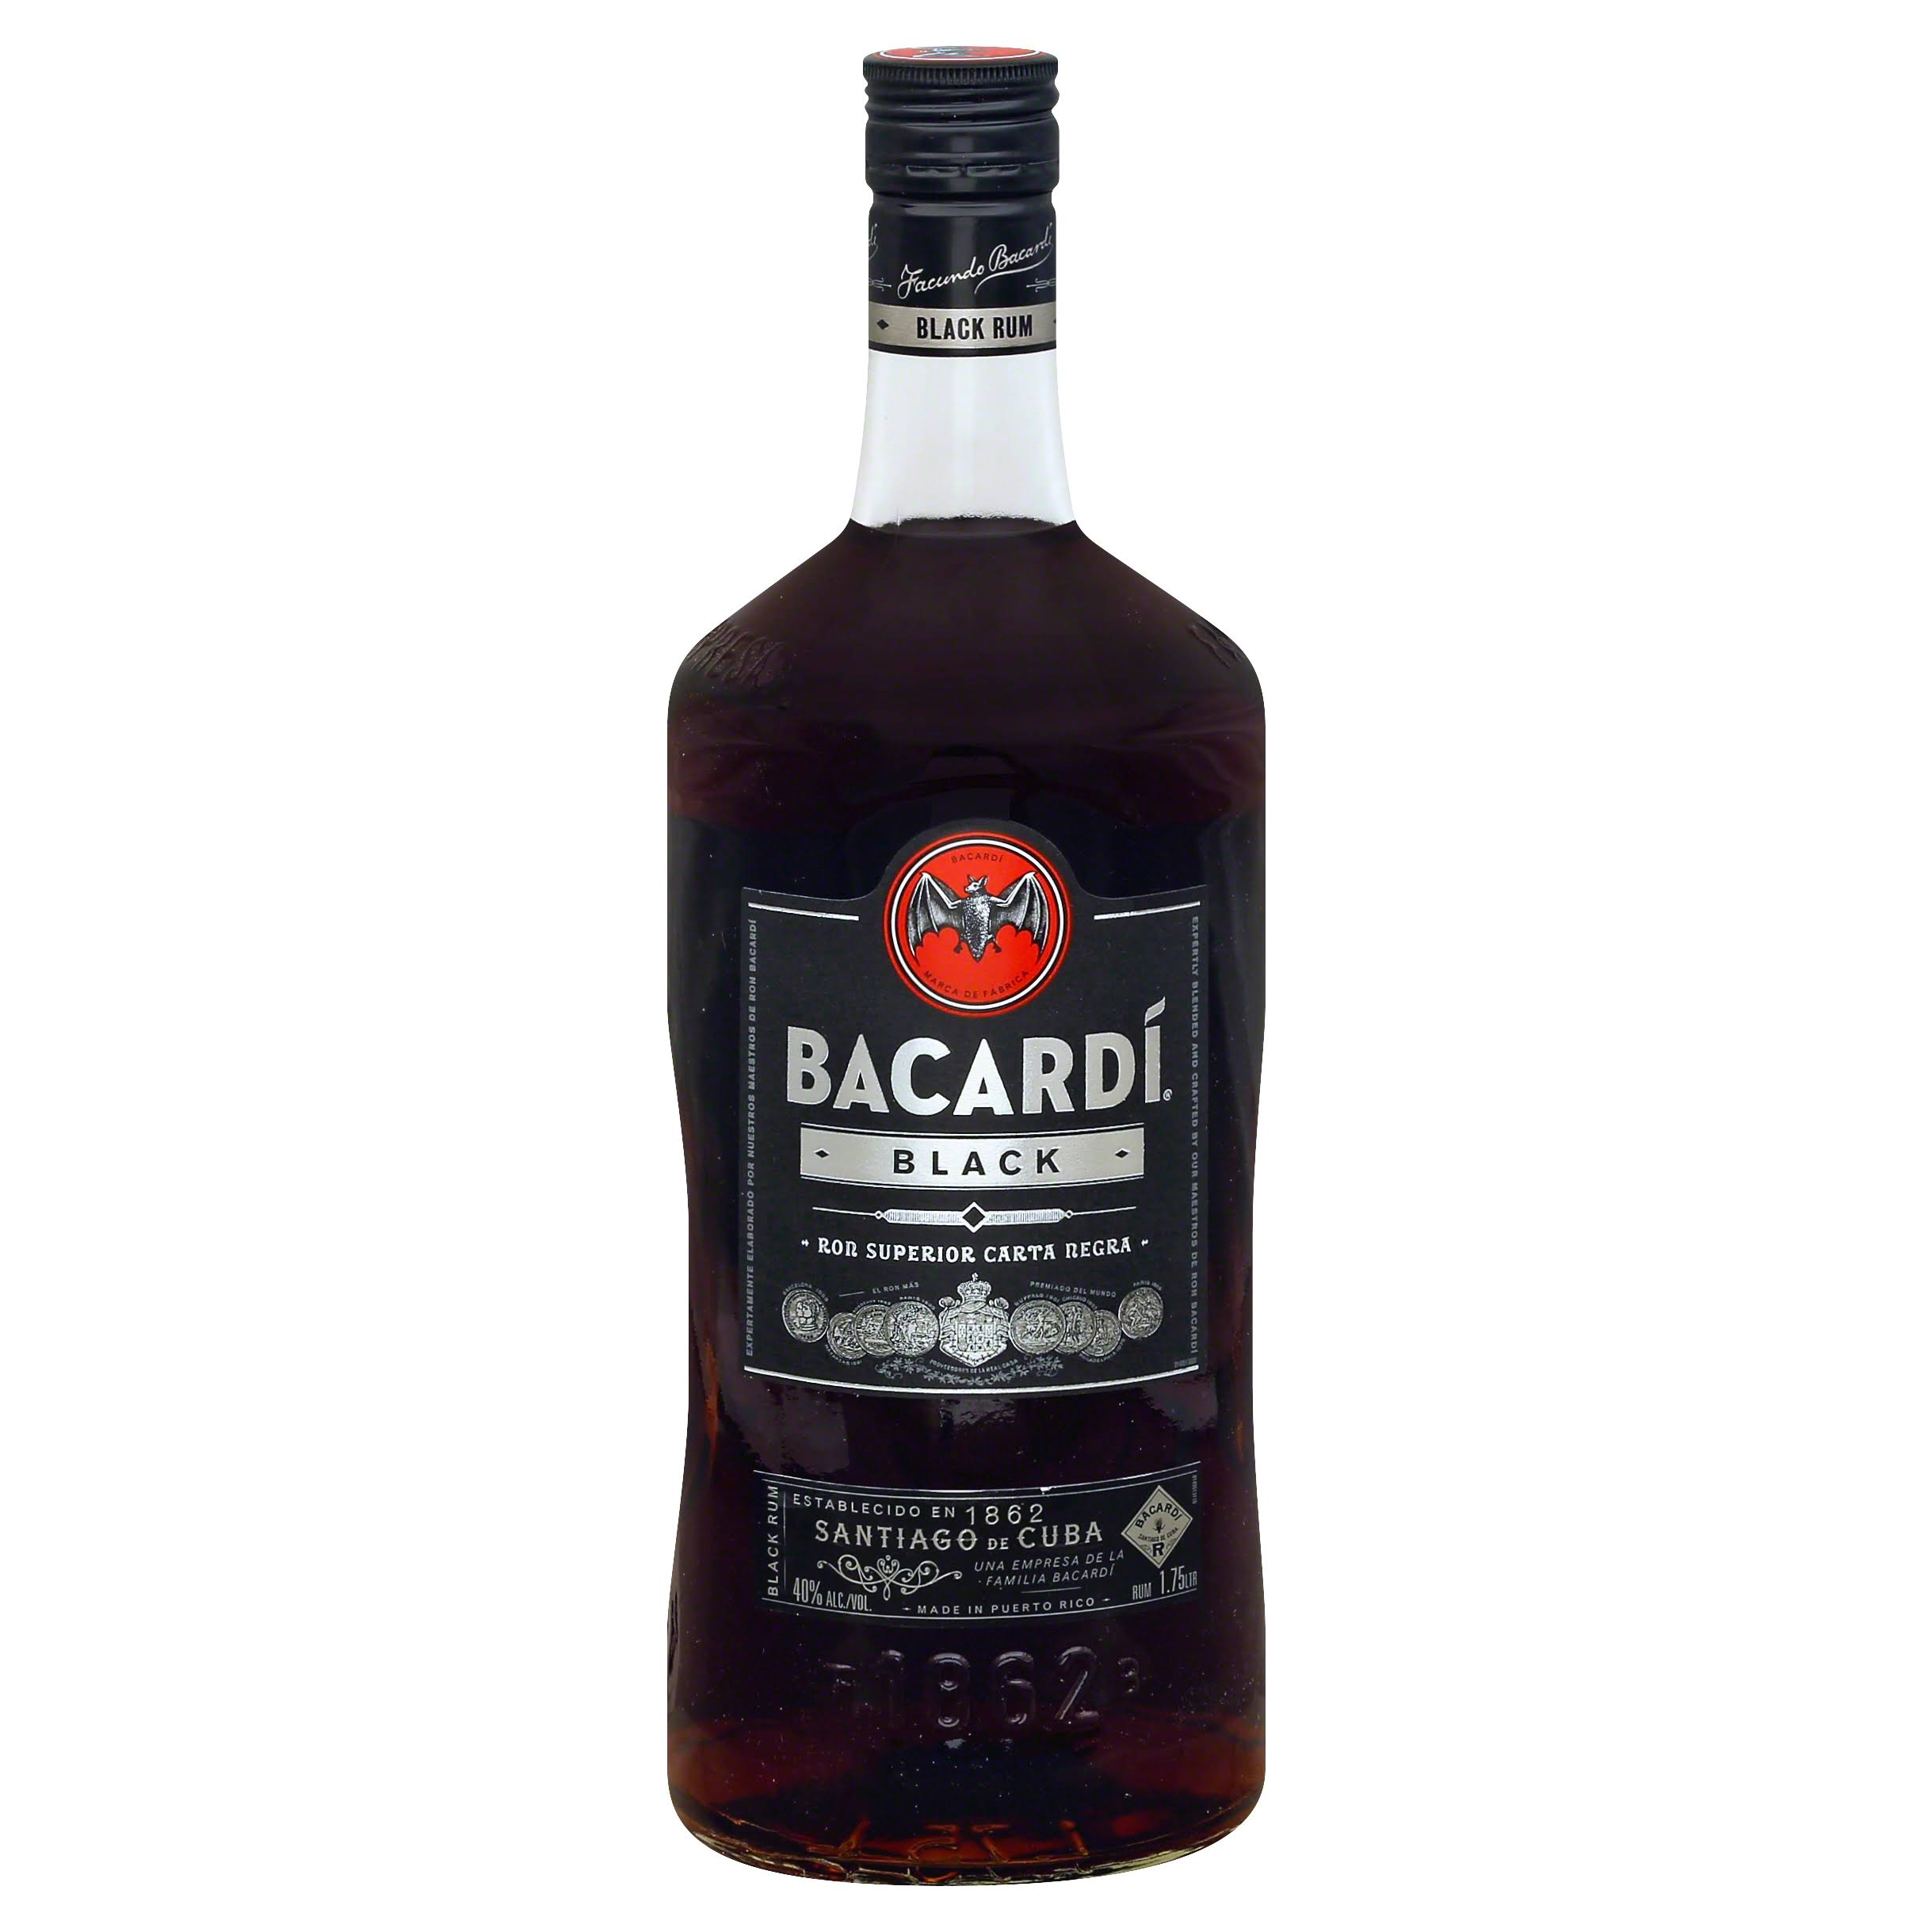 Bacardi Black Rum - 1.75 L bottle